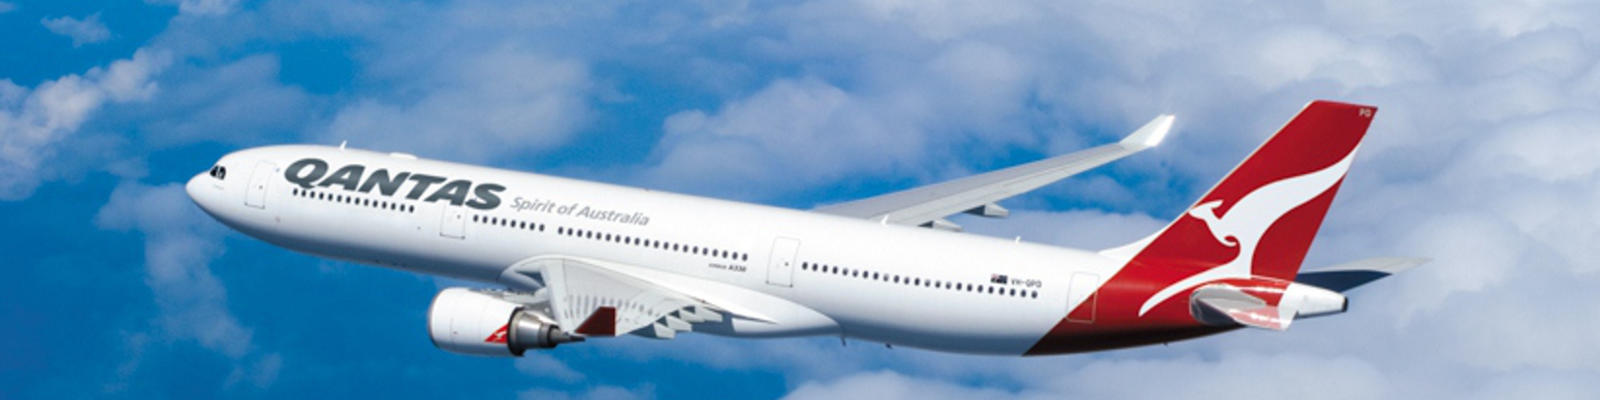 A Qantas A330 flying through the blue skies with fluffy white clouds in the background